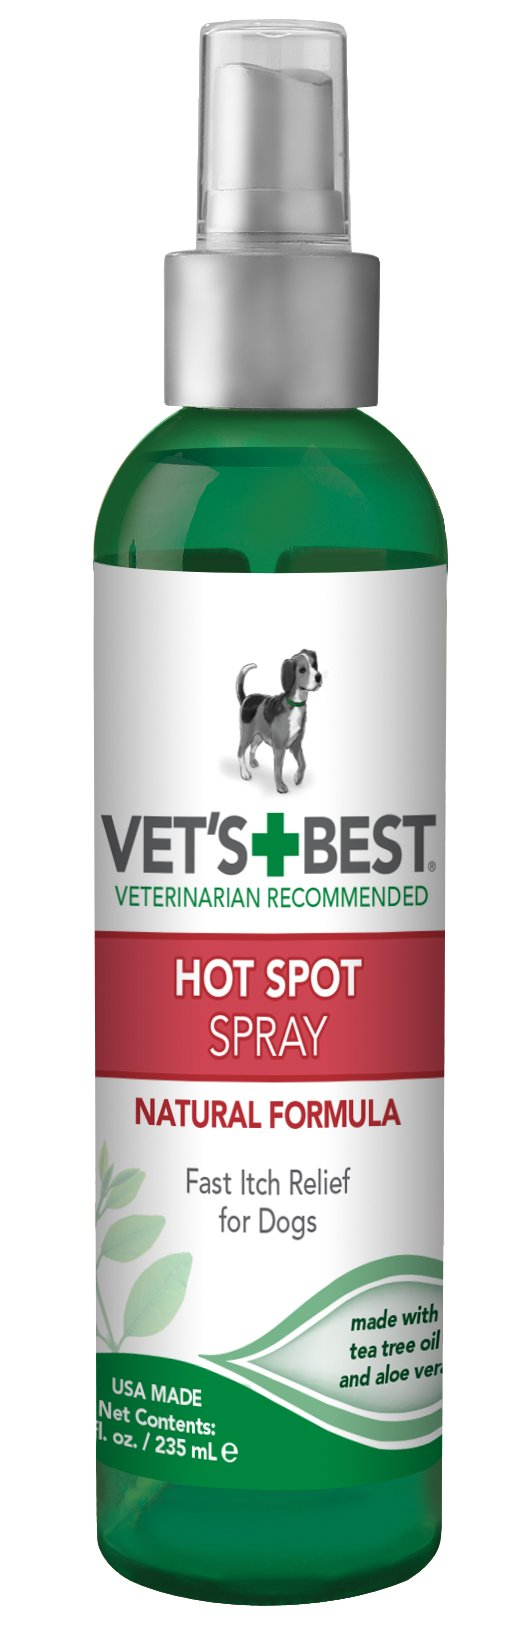 Vet's Best Hot Spot Itch Relief Spray for Dogs 8 oz